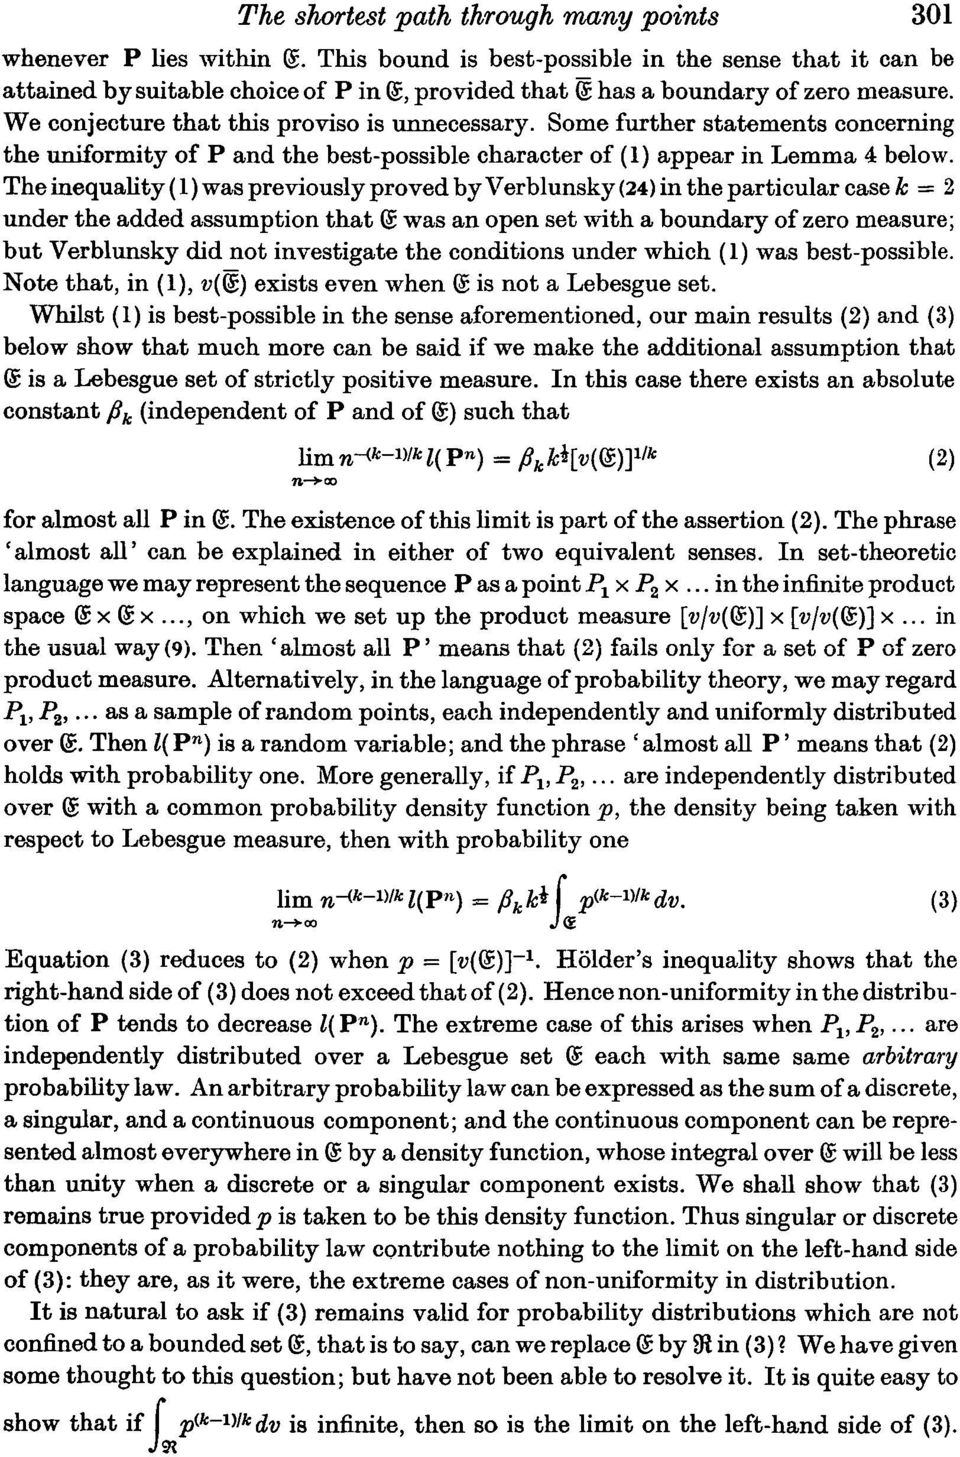 Some further statements concerning the uniformity of P and the best-possible character of (1) appear in Lemma 4 below.